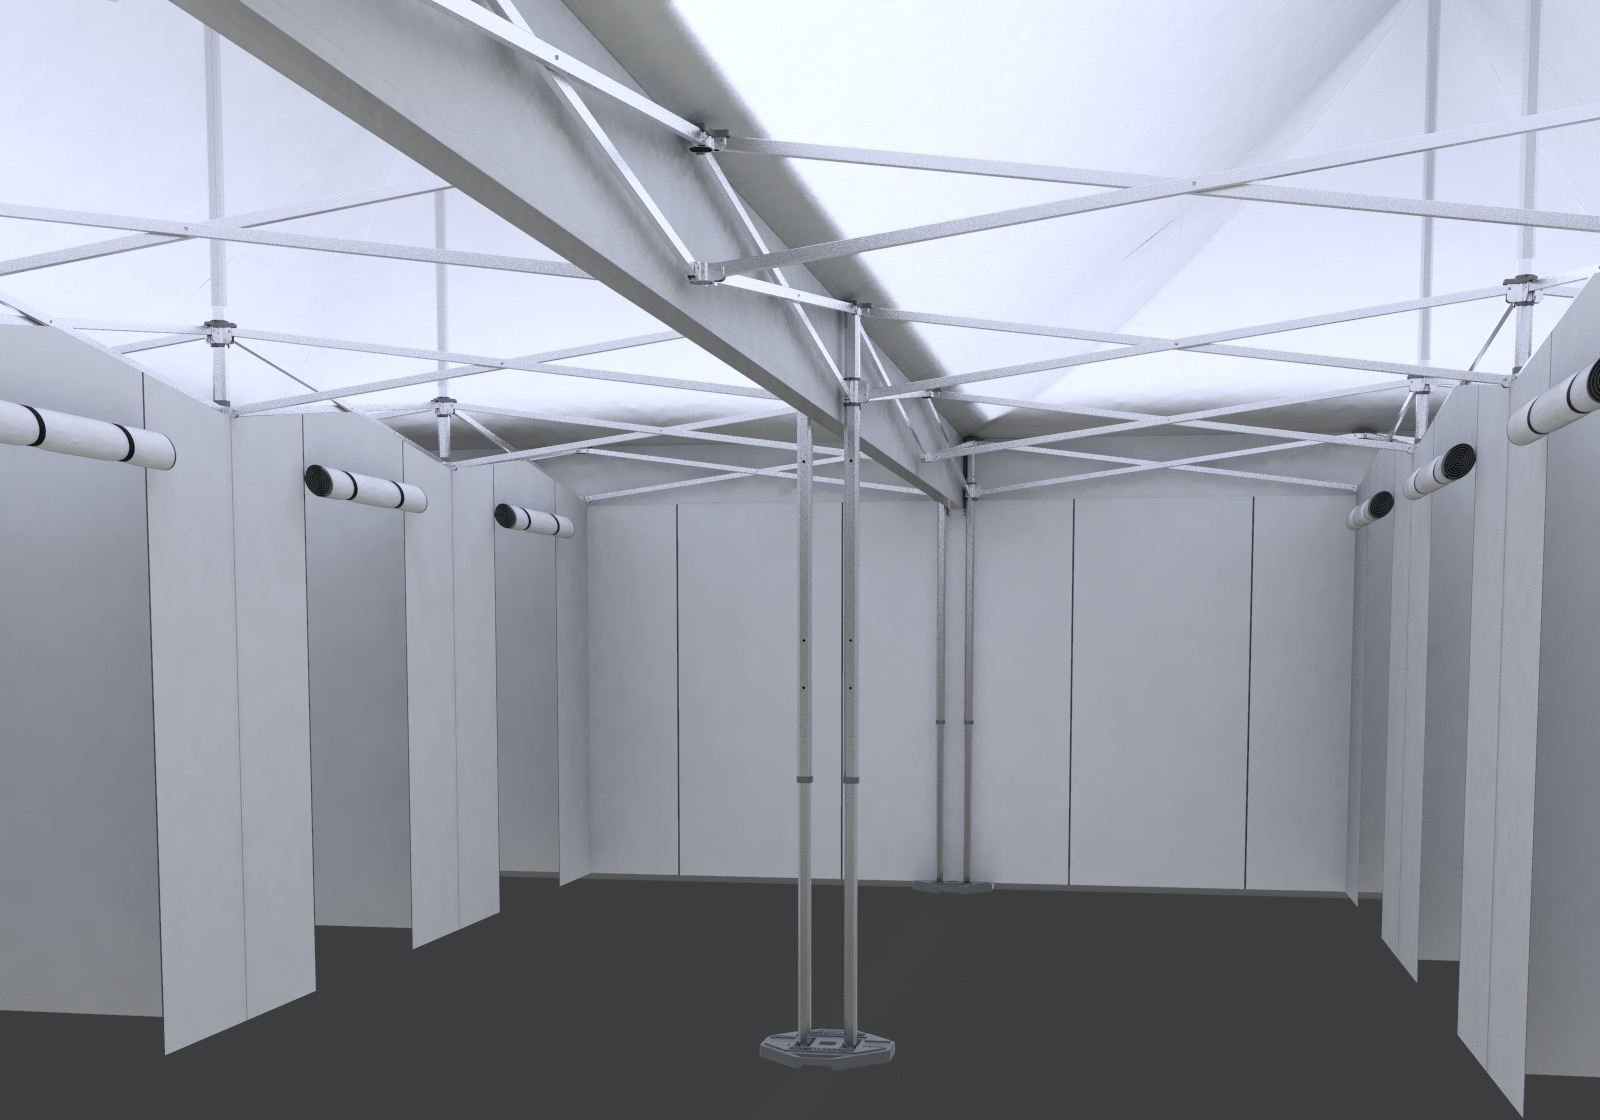 first person view inside an eight-room triage and containment infirmary tent built with an aluminum frame